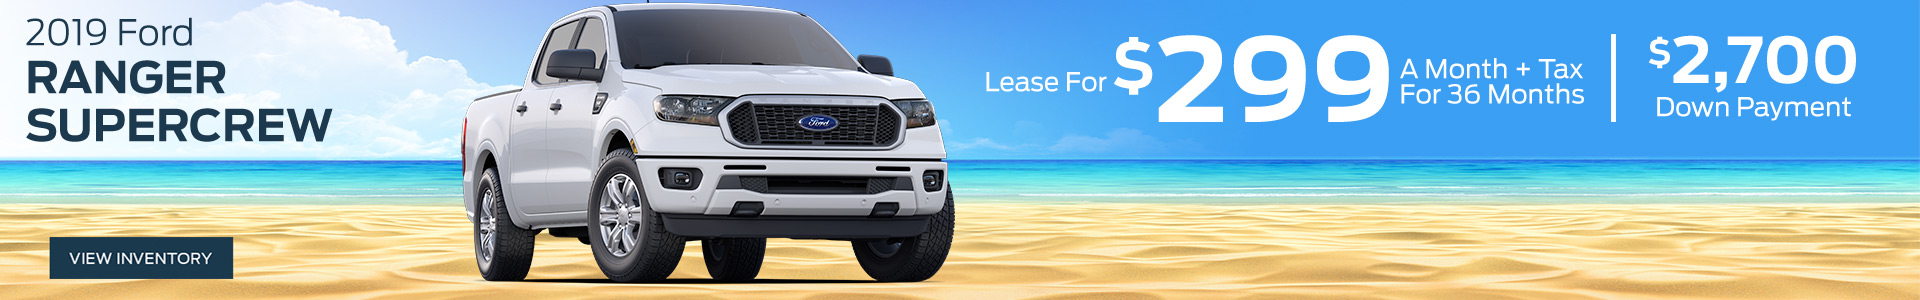 2019 Ford Ranger - Lease for $299